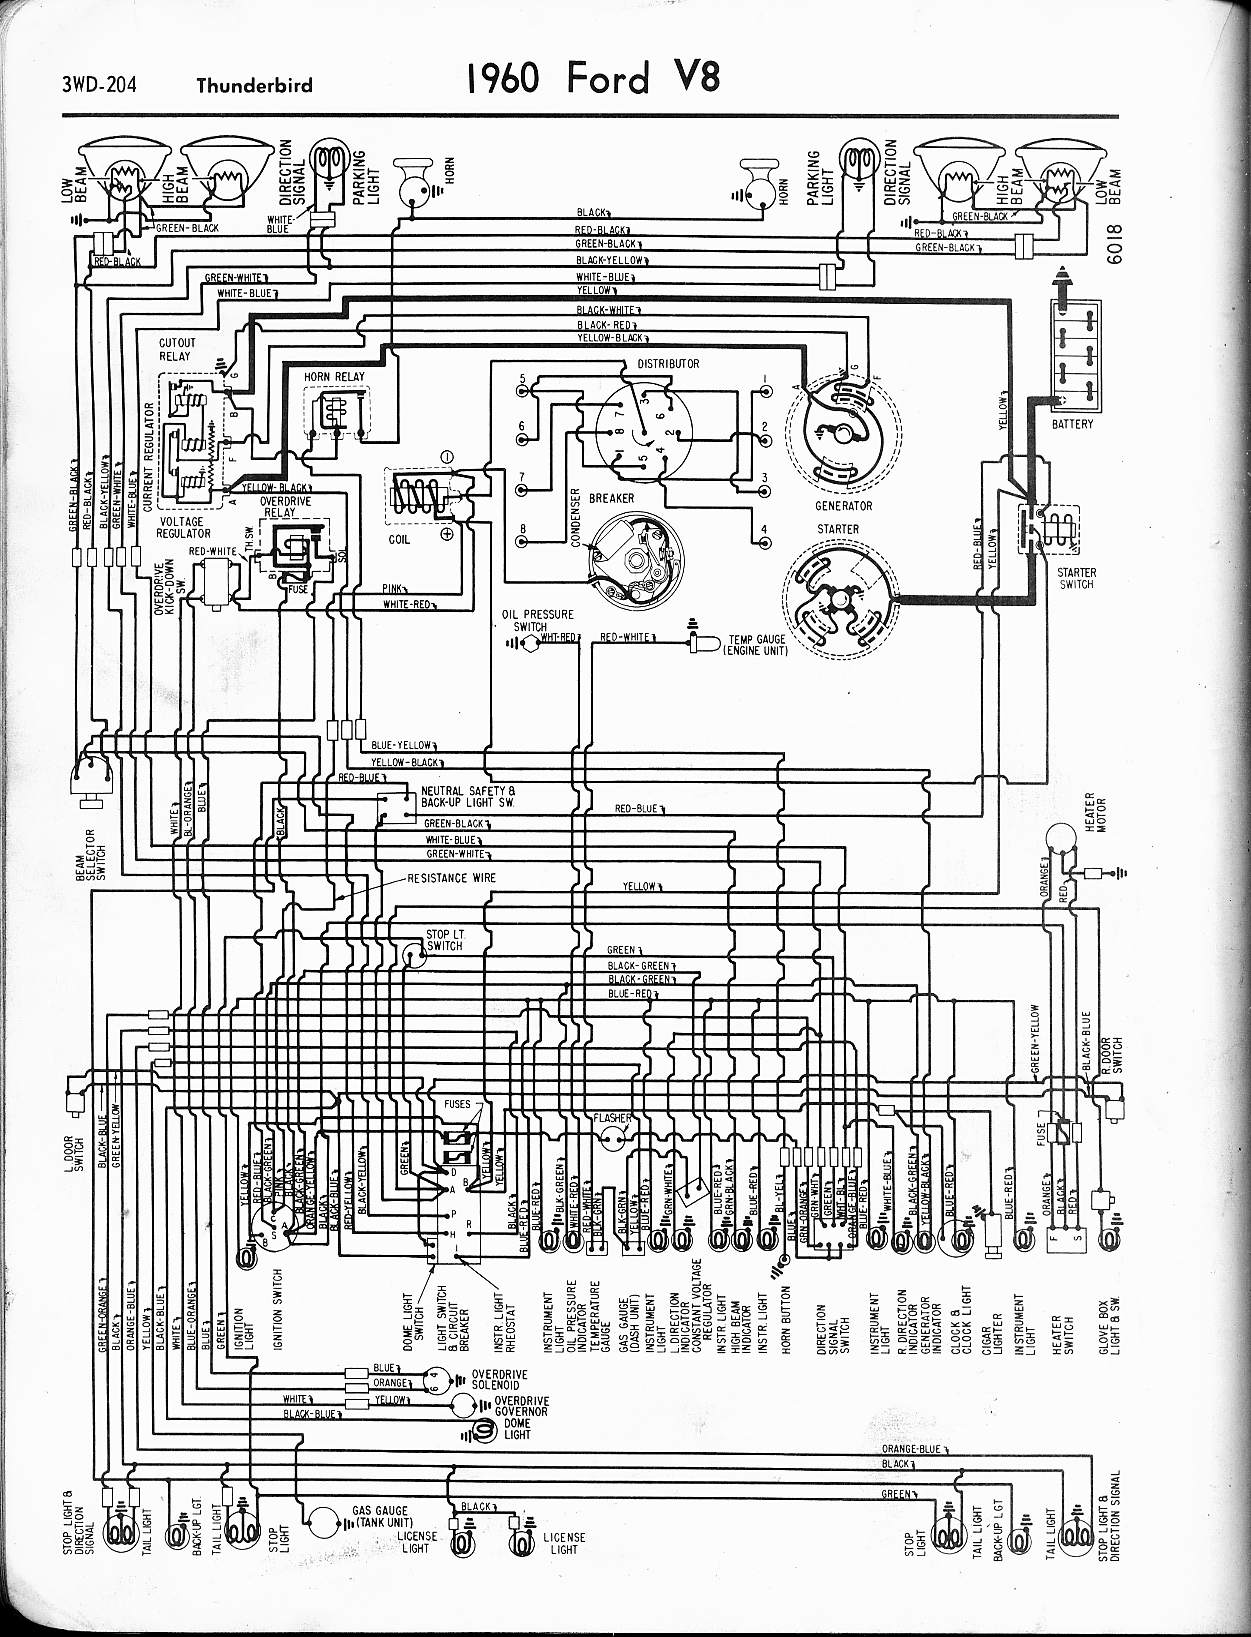 56 ford fairlane wiring diagram 57-65 ford wiring diagrams